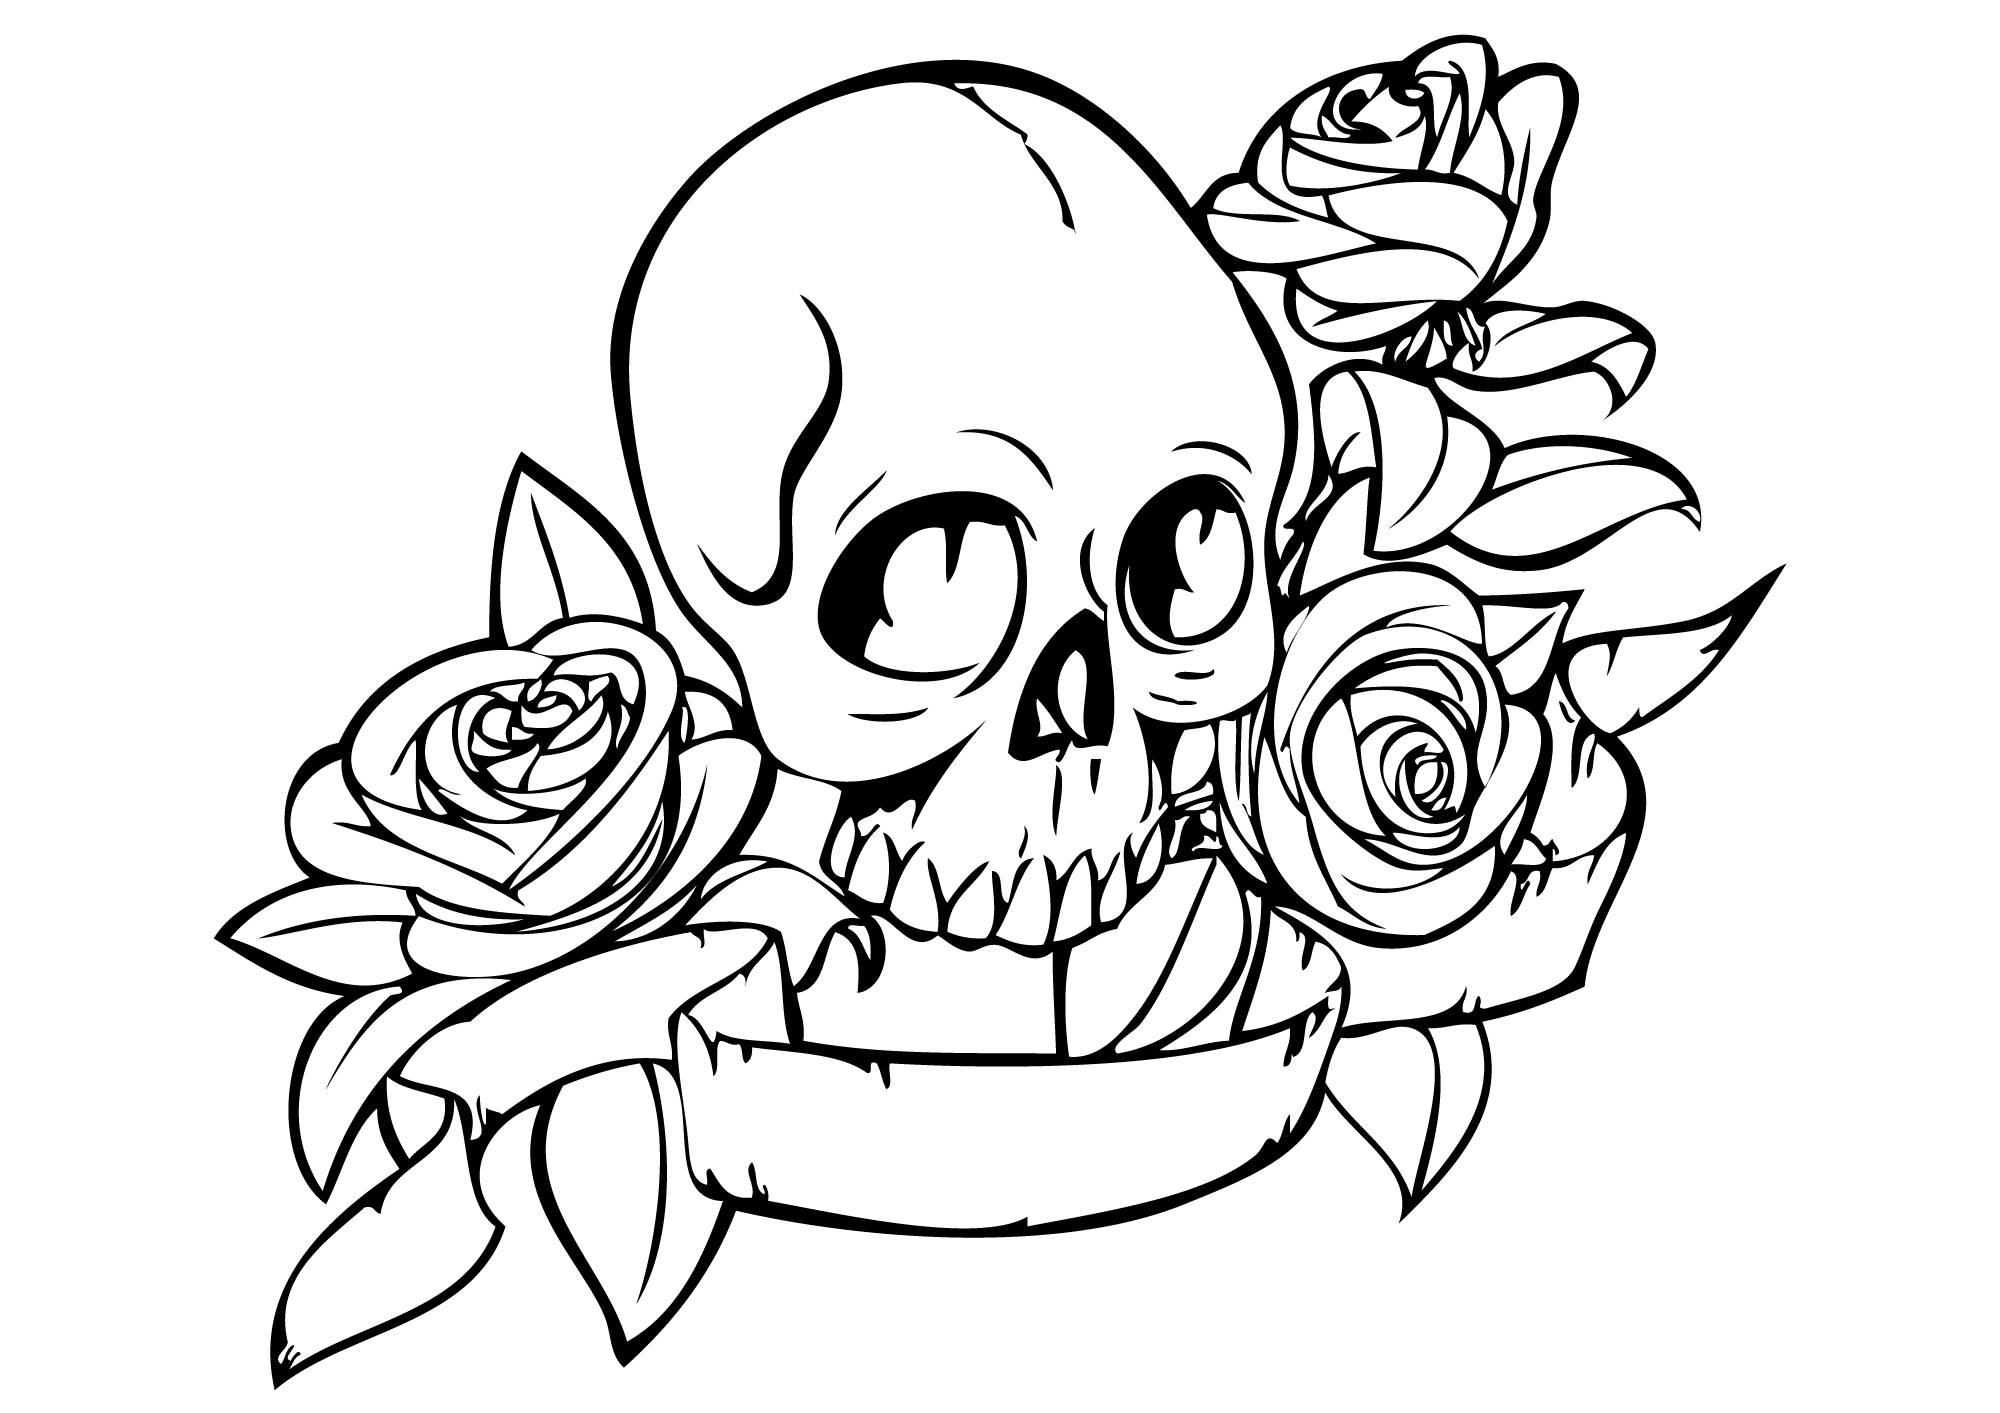 Free Skulls Roses Coloring Pages Coloring Pages Of Skulls